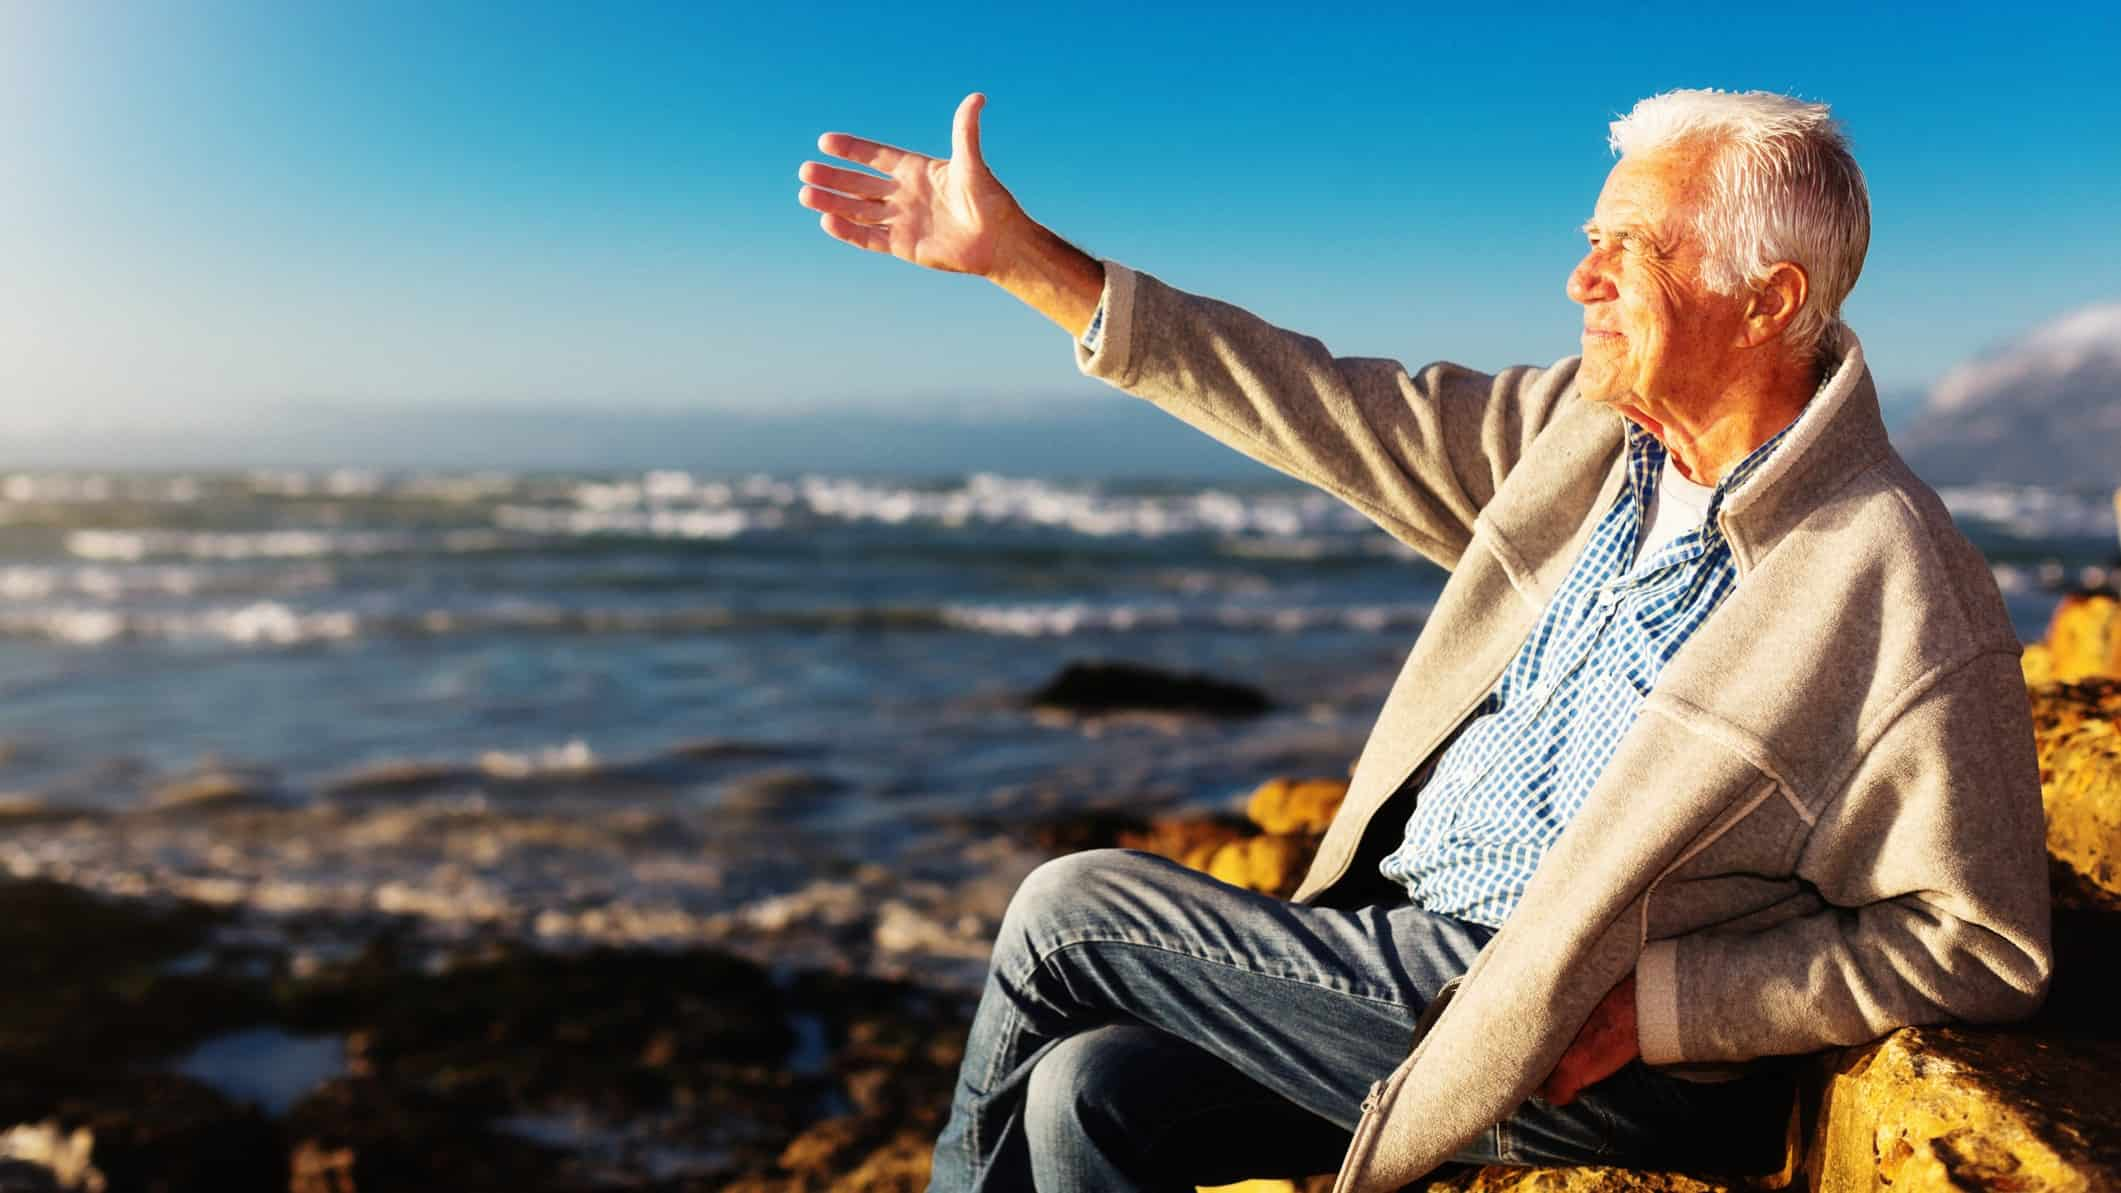 A mature aged man sits on a rock at the beach, indicating ways to build wealth after 50